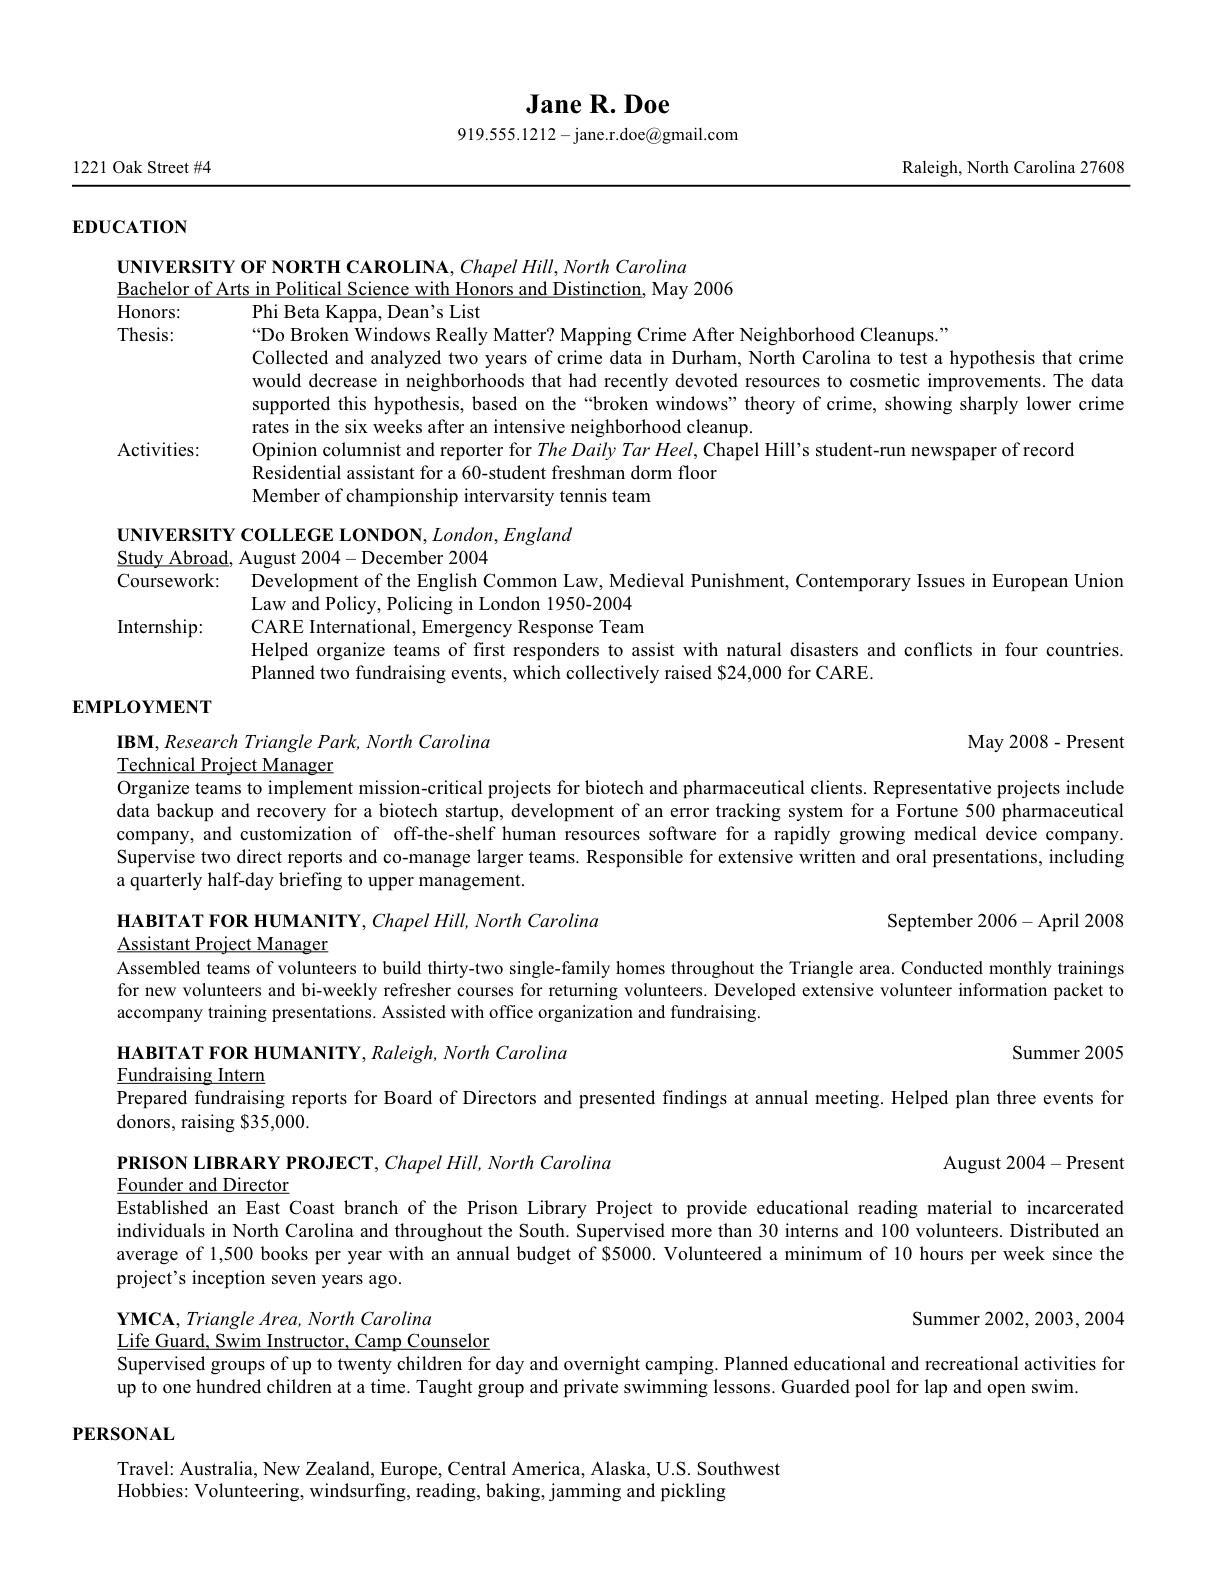 Read section called Resume Gaffes and Resume Guidelines. Think about a thesis for the long report. help with dissertation